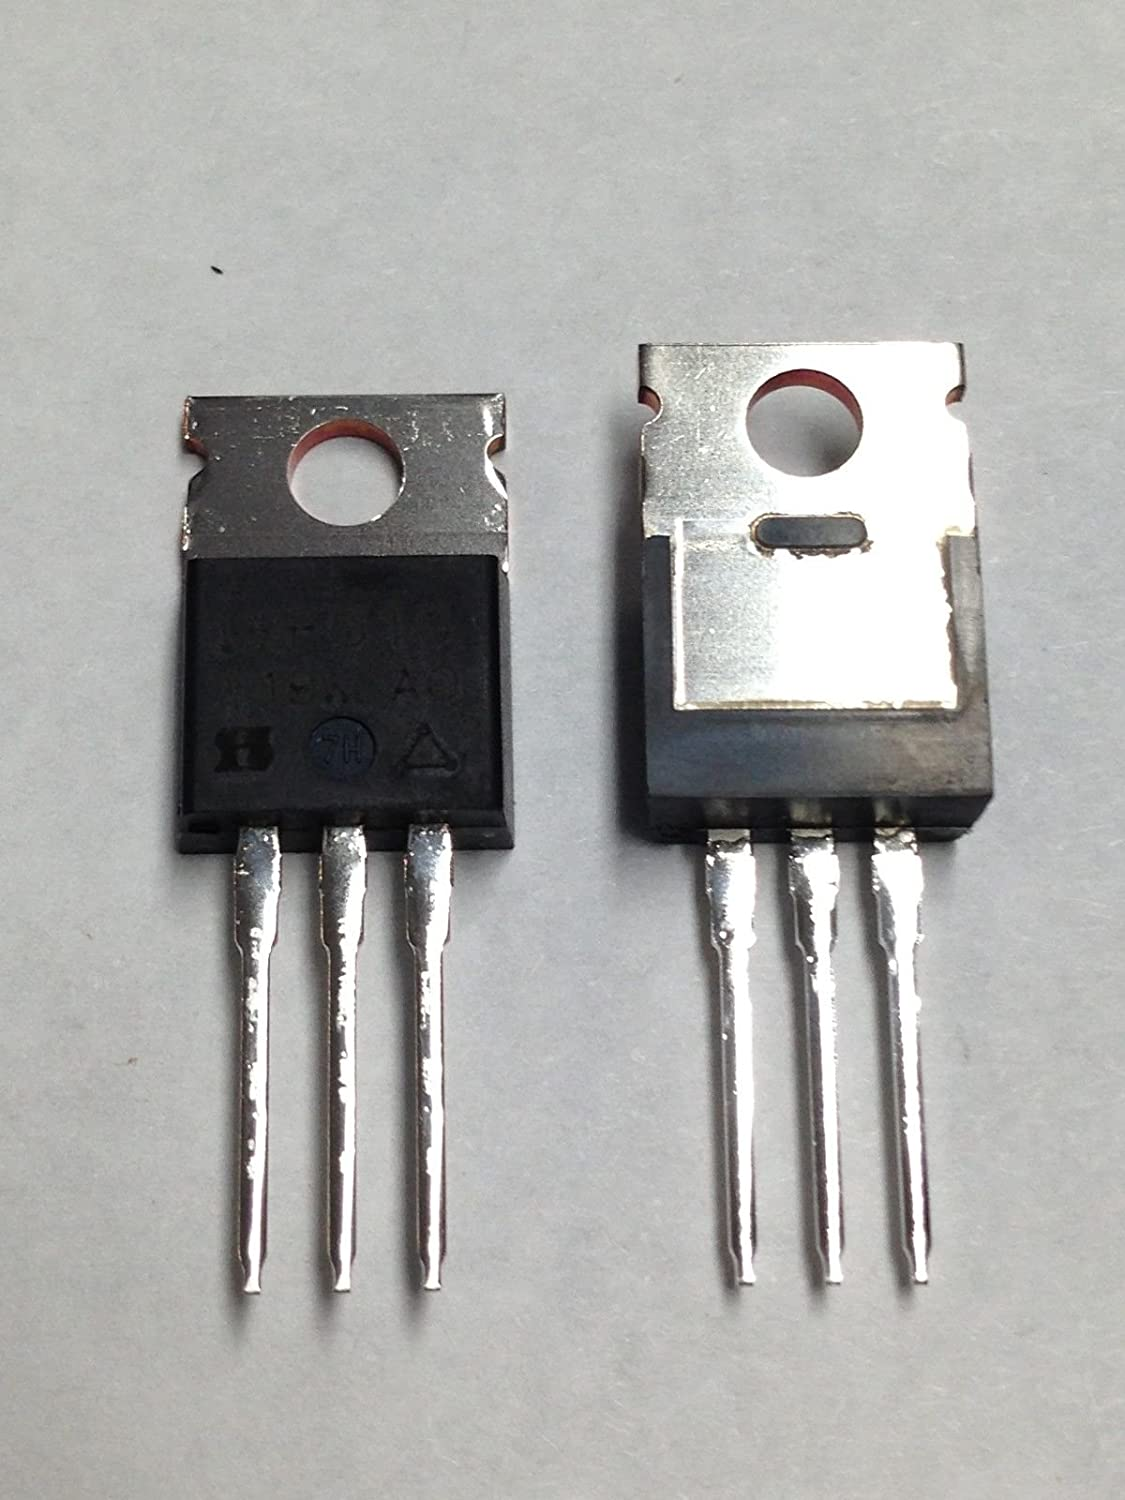 1pc Metric Right Hand Die M50 X 2mm Dies Threading Tools 50mm X 2mm pitch